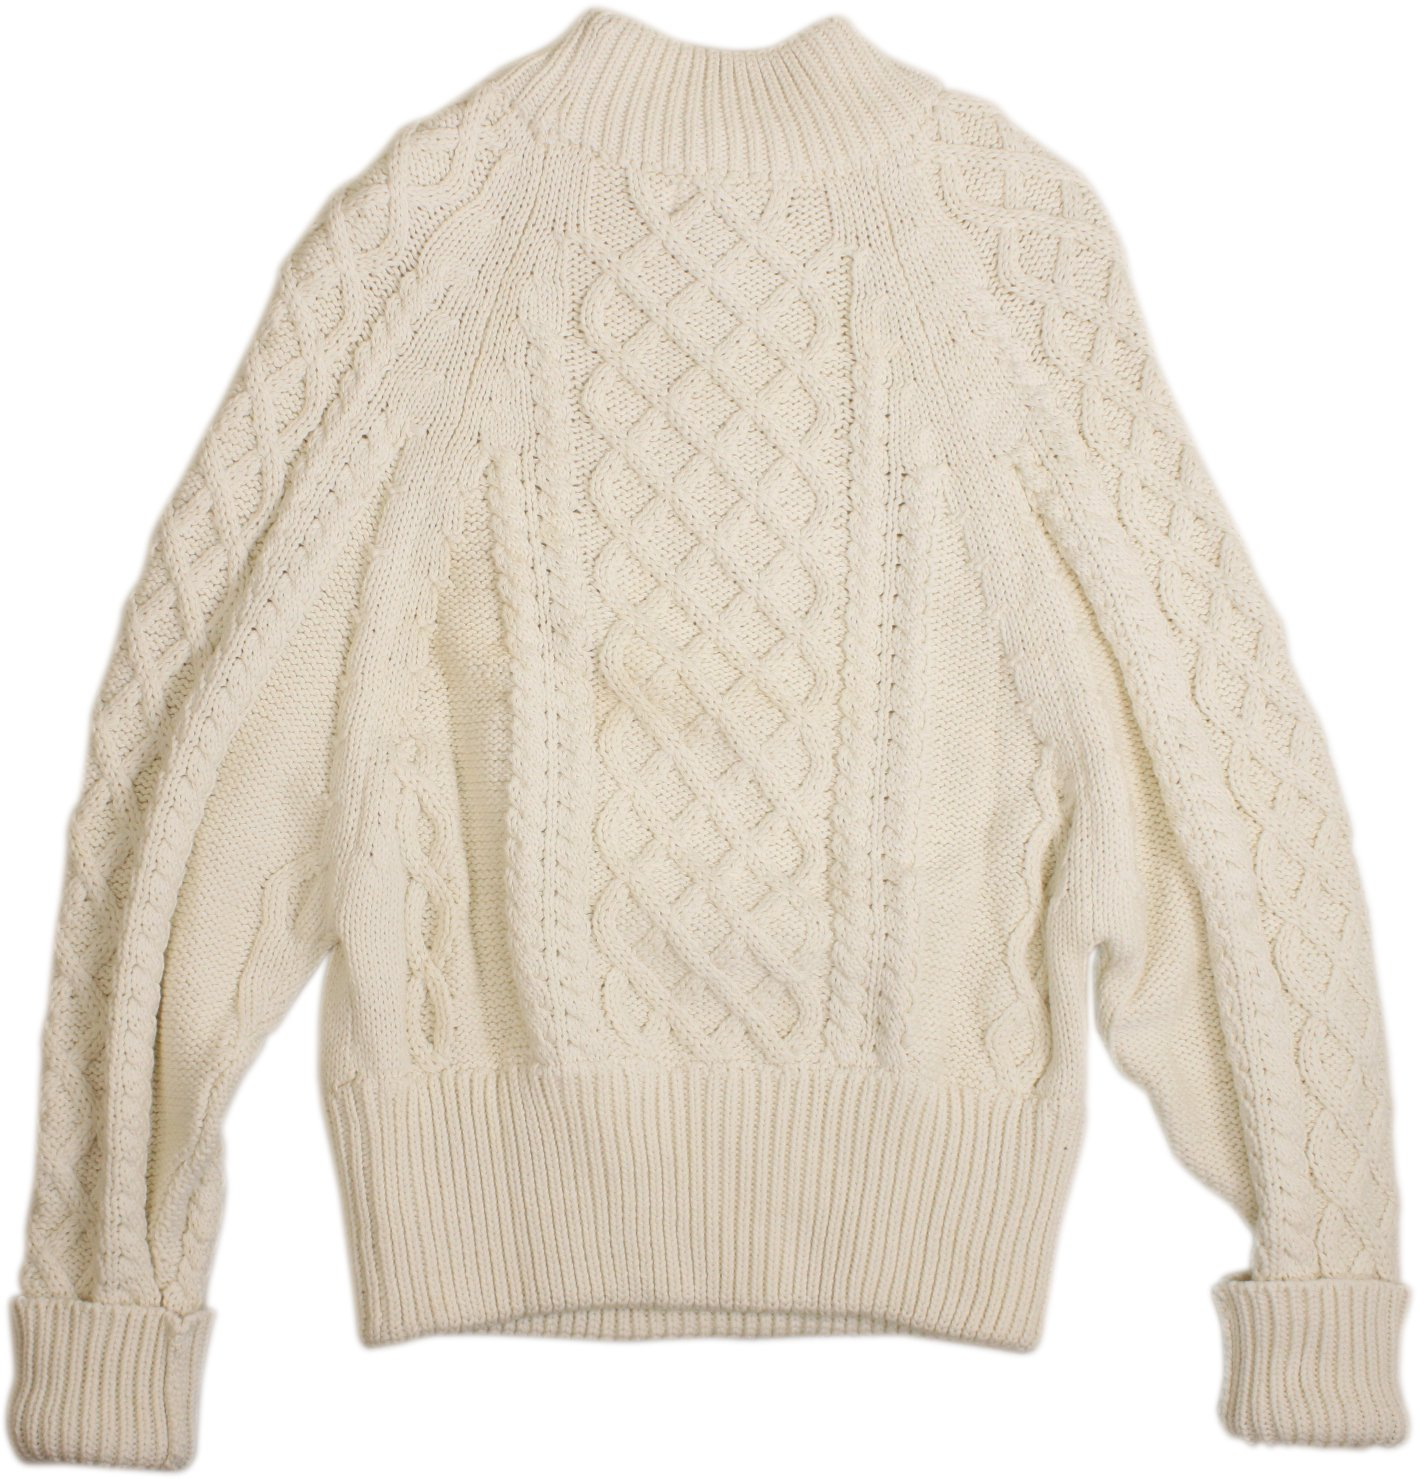 Faithfull Brand Lauren Knit Sweater Off White Womens S